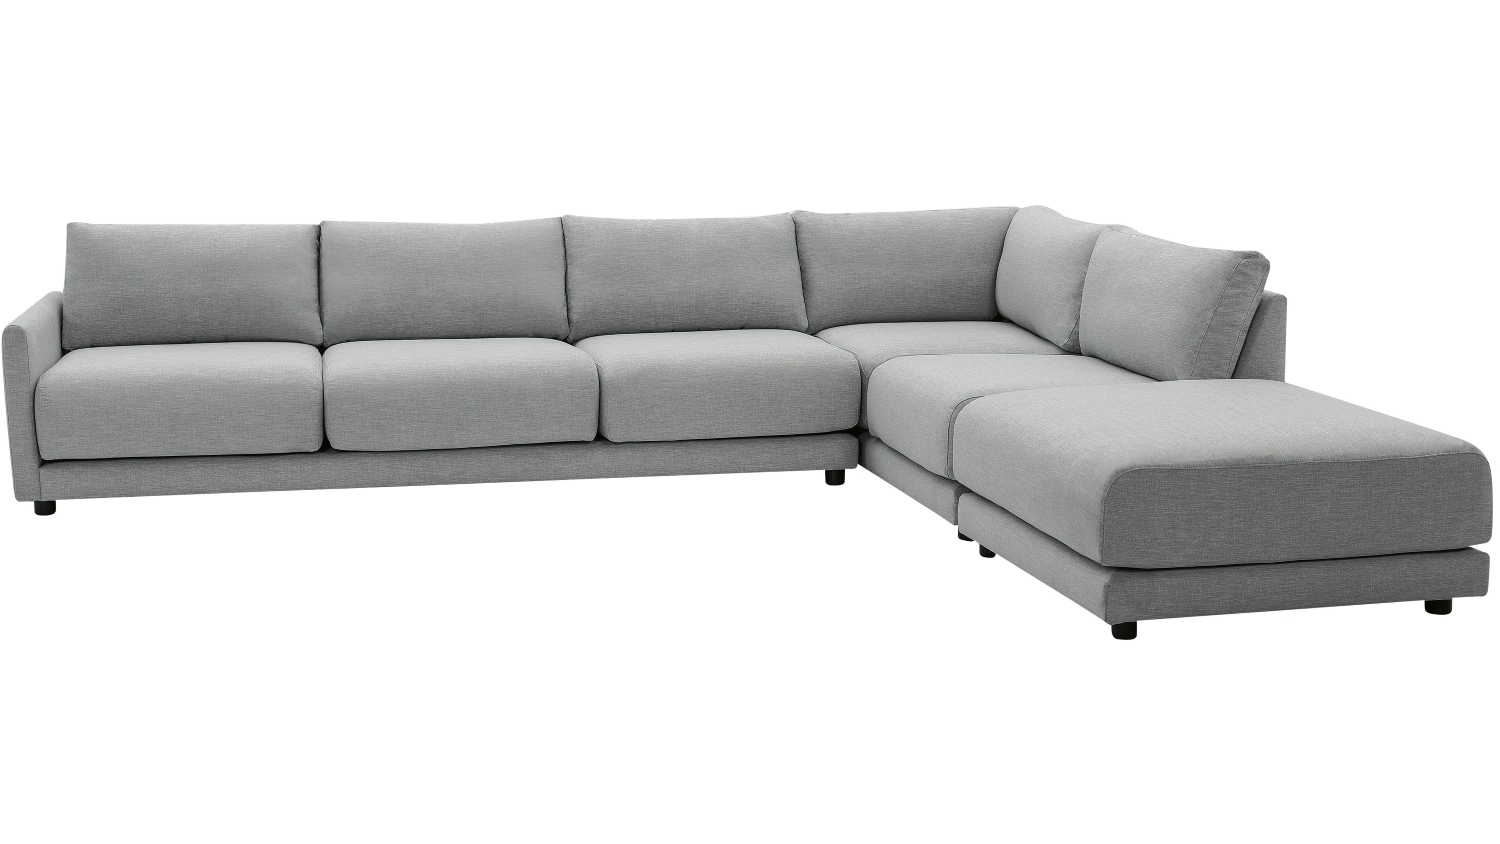 modular lounge with sofa bed adelaide maxwell leather for sale melbourne brokeasshome